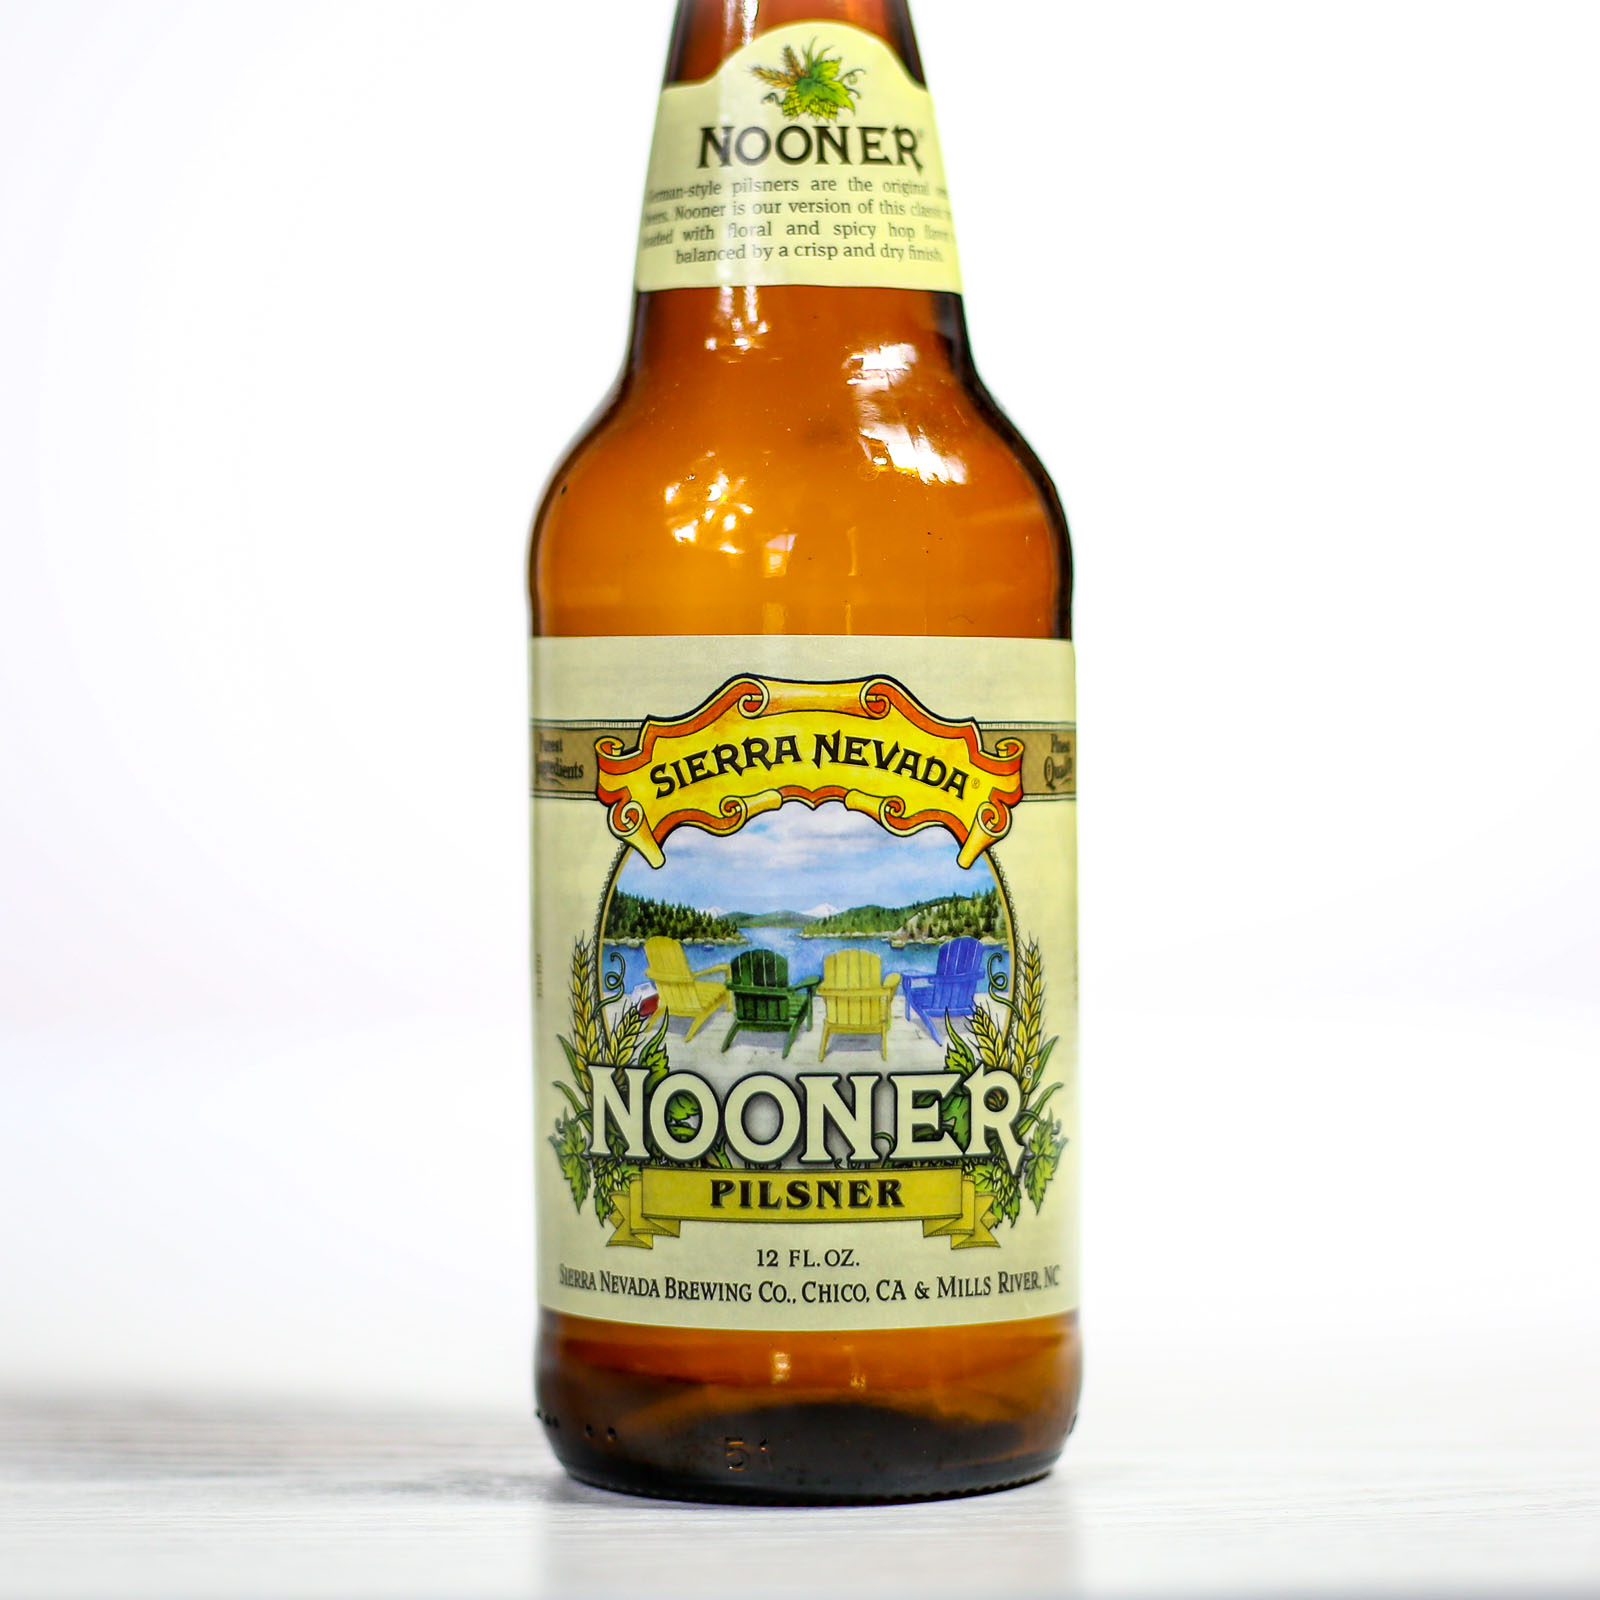 Sierra Nevada Brewing Co. - Nooner Pilsner